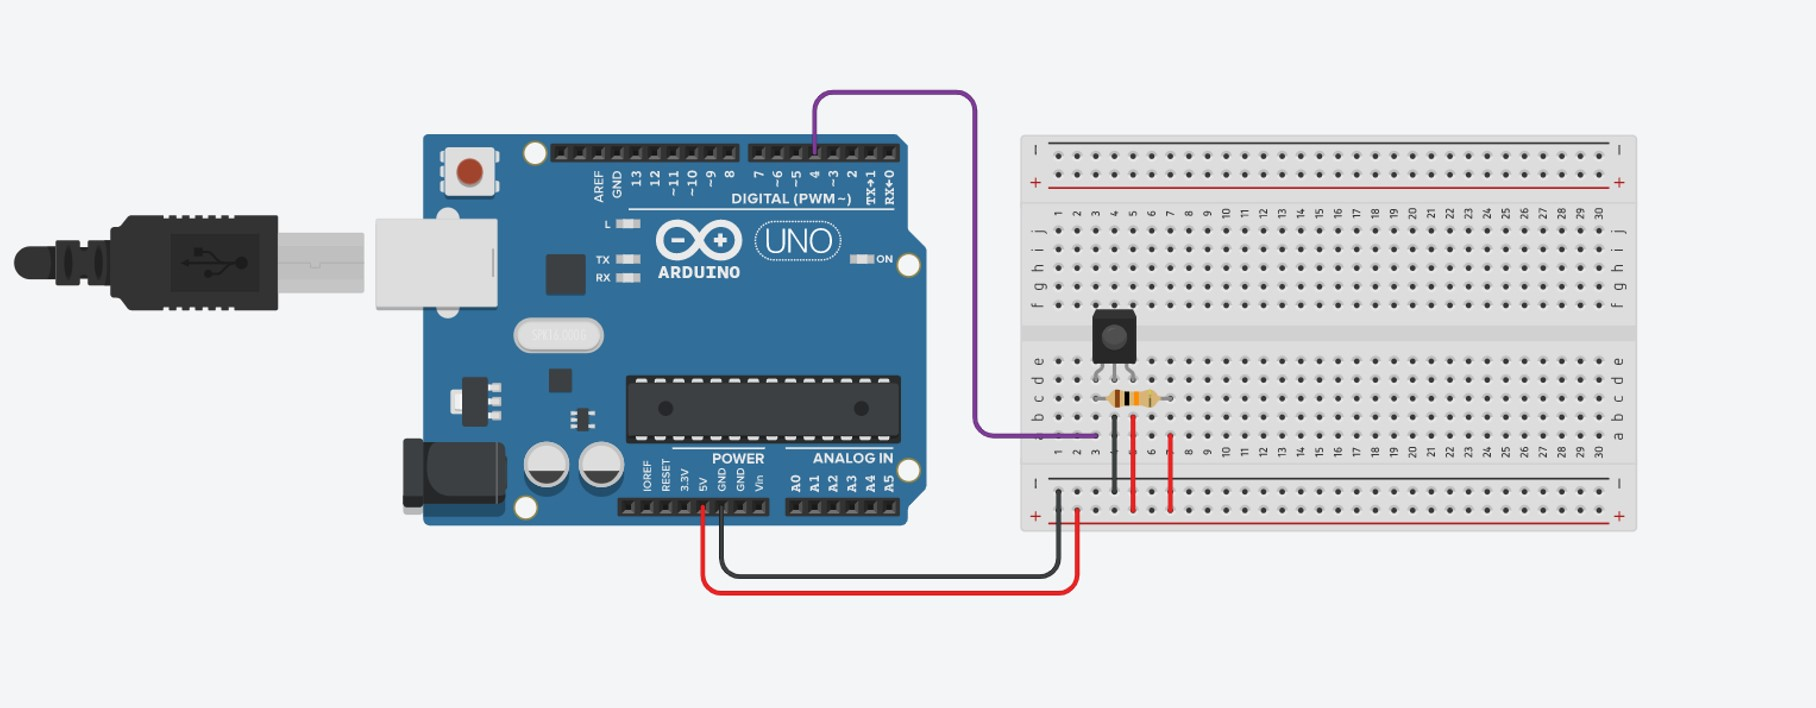 Infrared Sensor Connected To Arduino